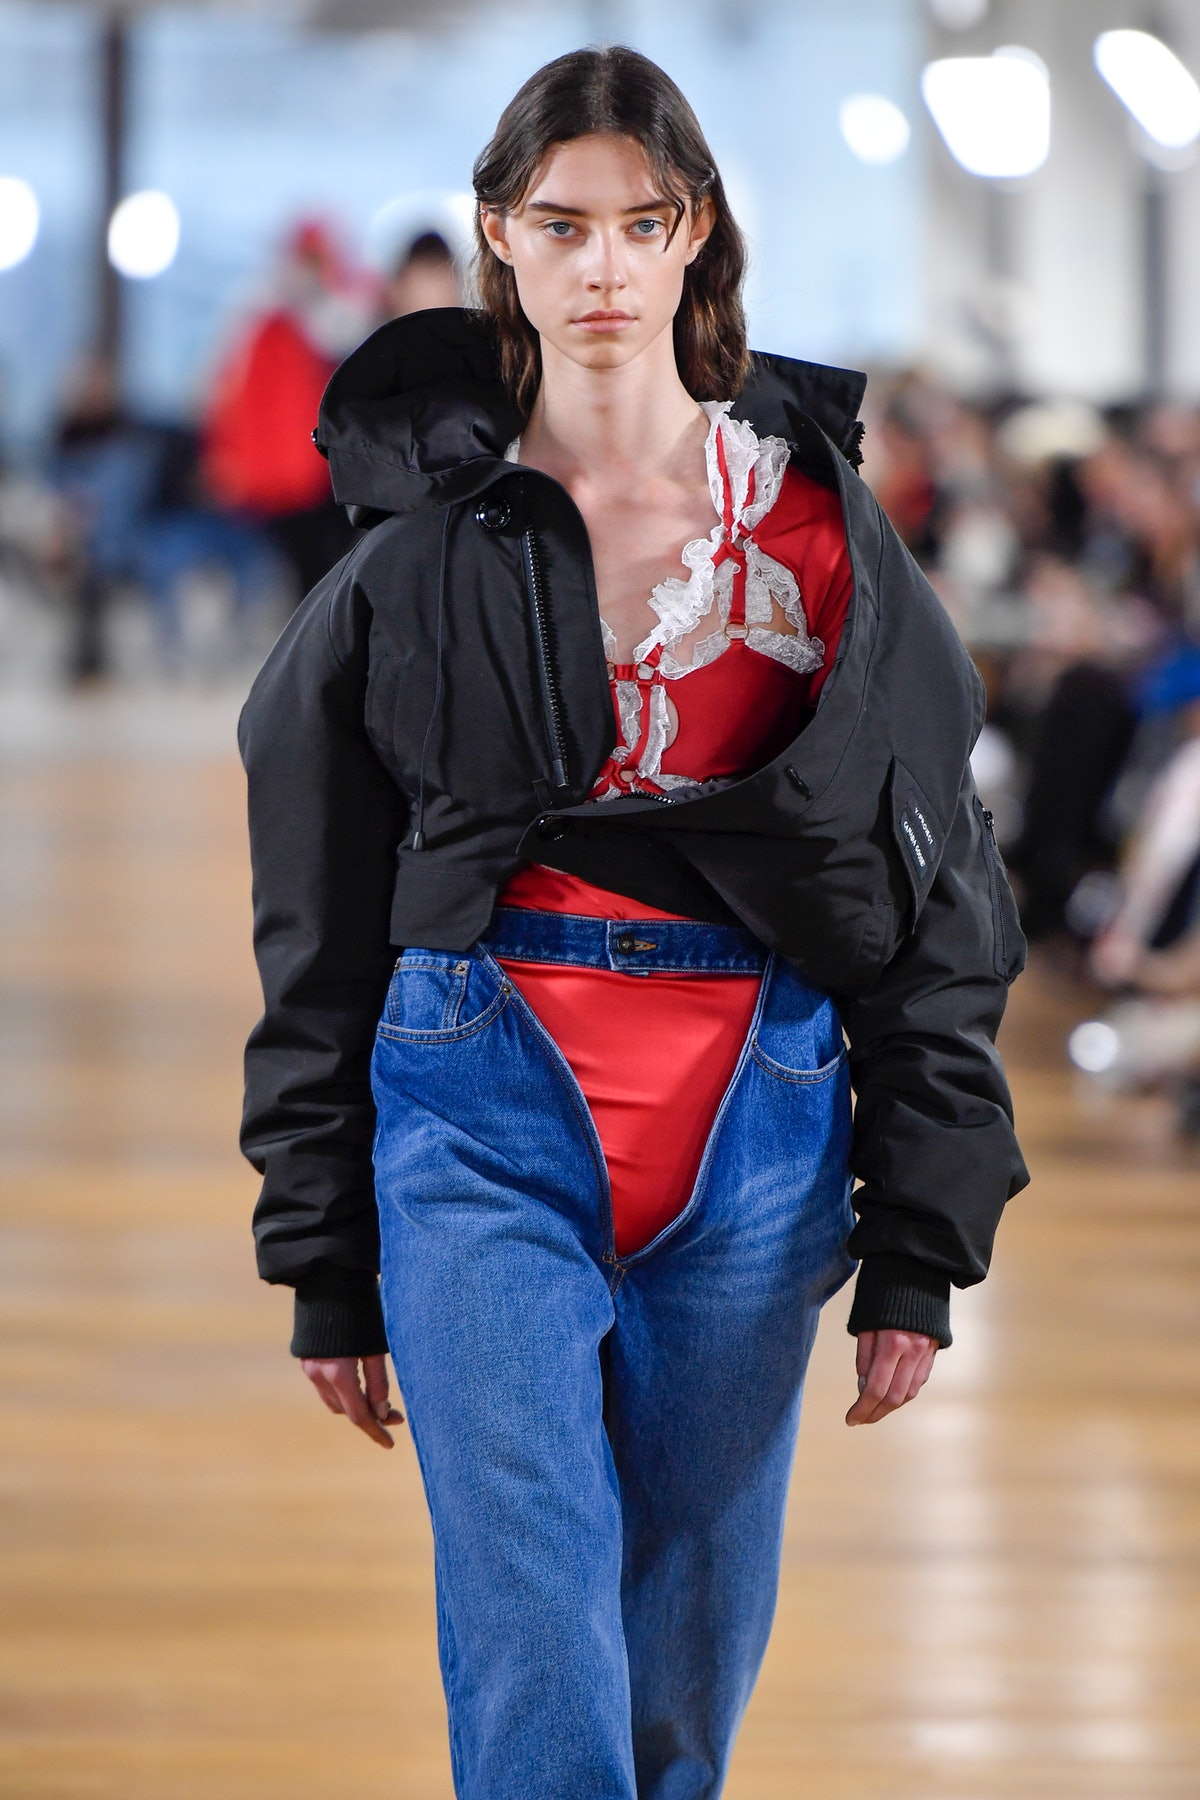 PARIS, FRANCE - MARCH 02 : A model walks the runway during the Y/Project Ready to Wear fashion show as part of the Paris Fashion Week Womenswear Fall/Winter 2020-2021 on March 2, 2020 in Paris, France. (Photo by Victor VIRGILE/Gamma-Rapho via Getty Images)